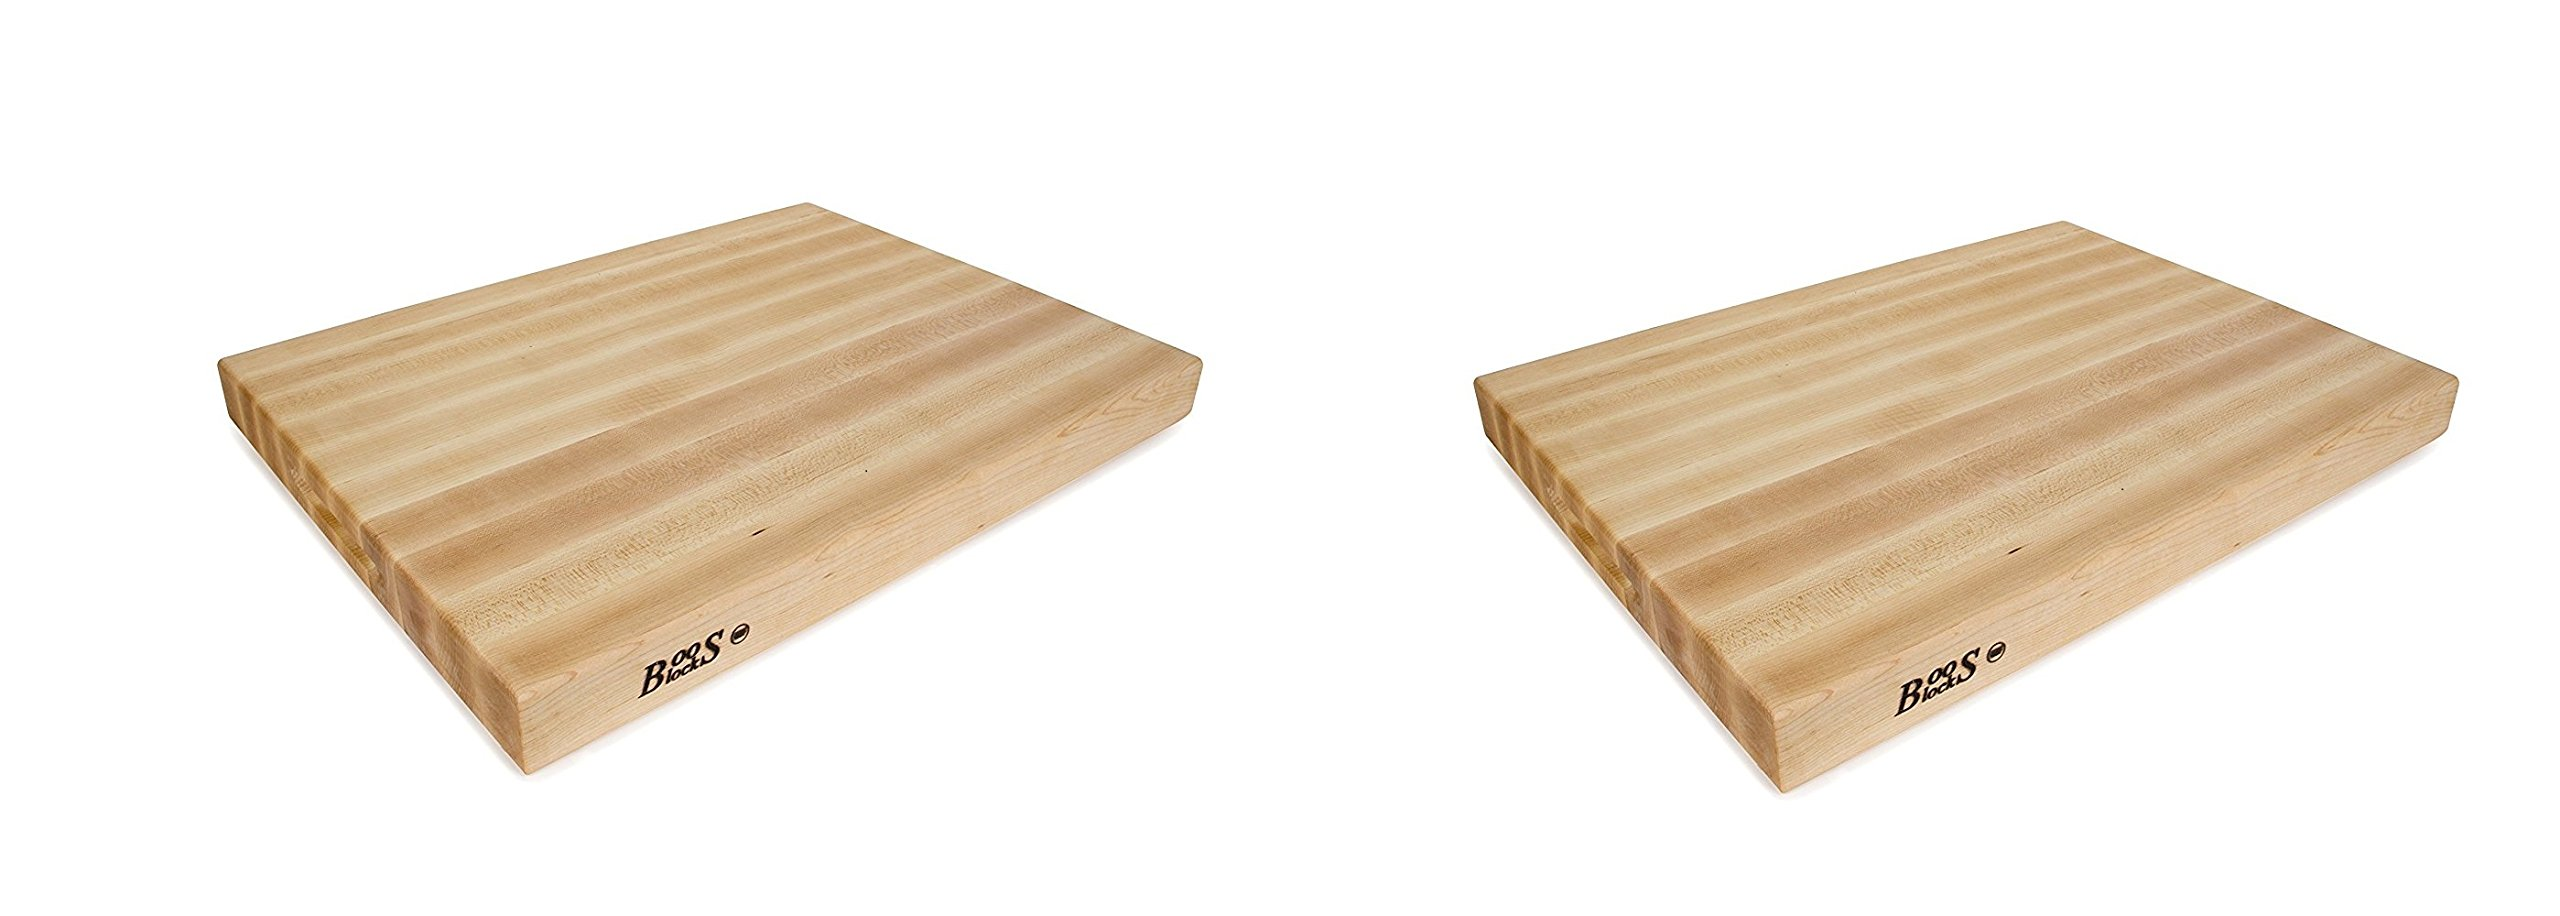 John Boos RA03 Maple Wood Edge Grain Reversible Cutting Board, 24 Inches x 18 Inches x 2.25 Inches (Pack of 2)